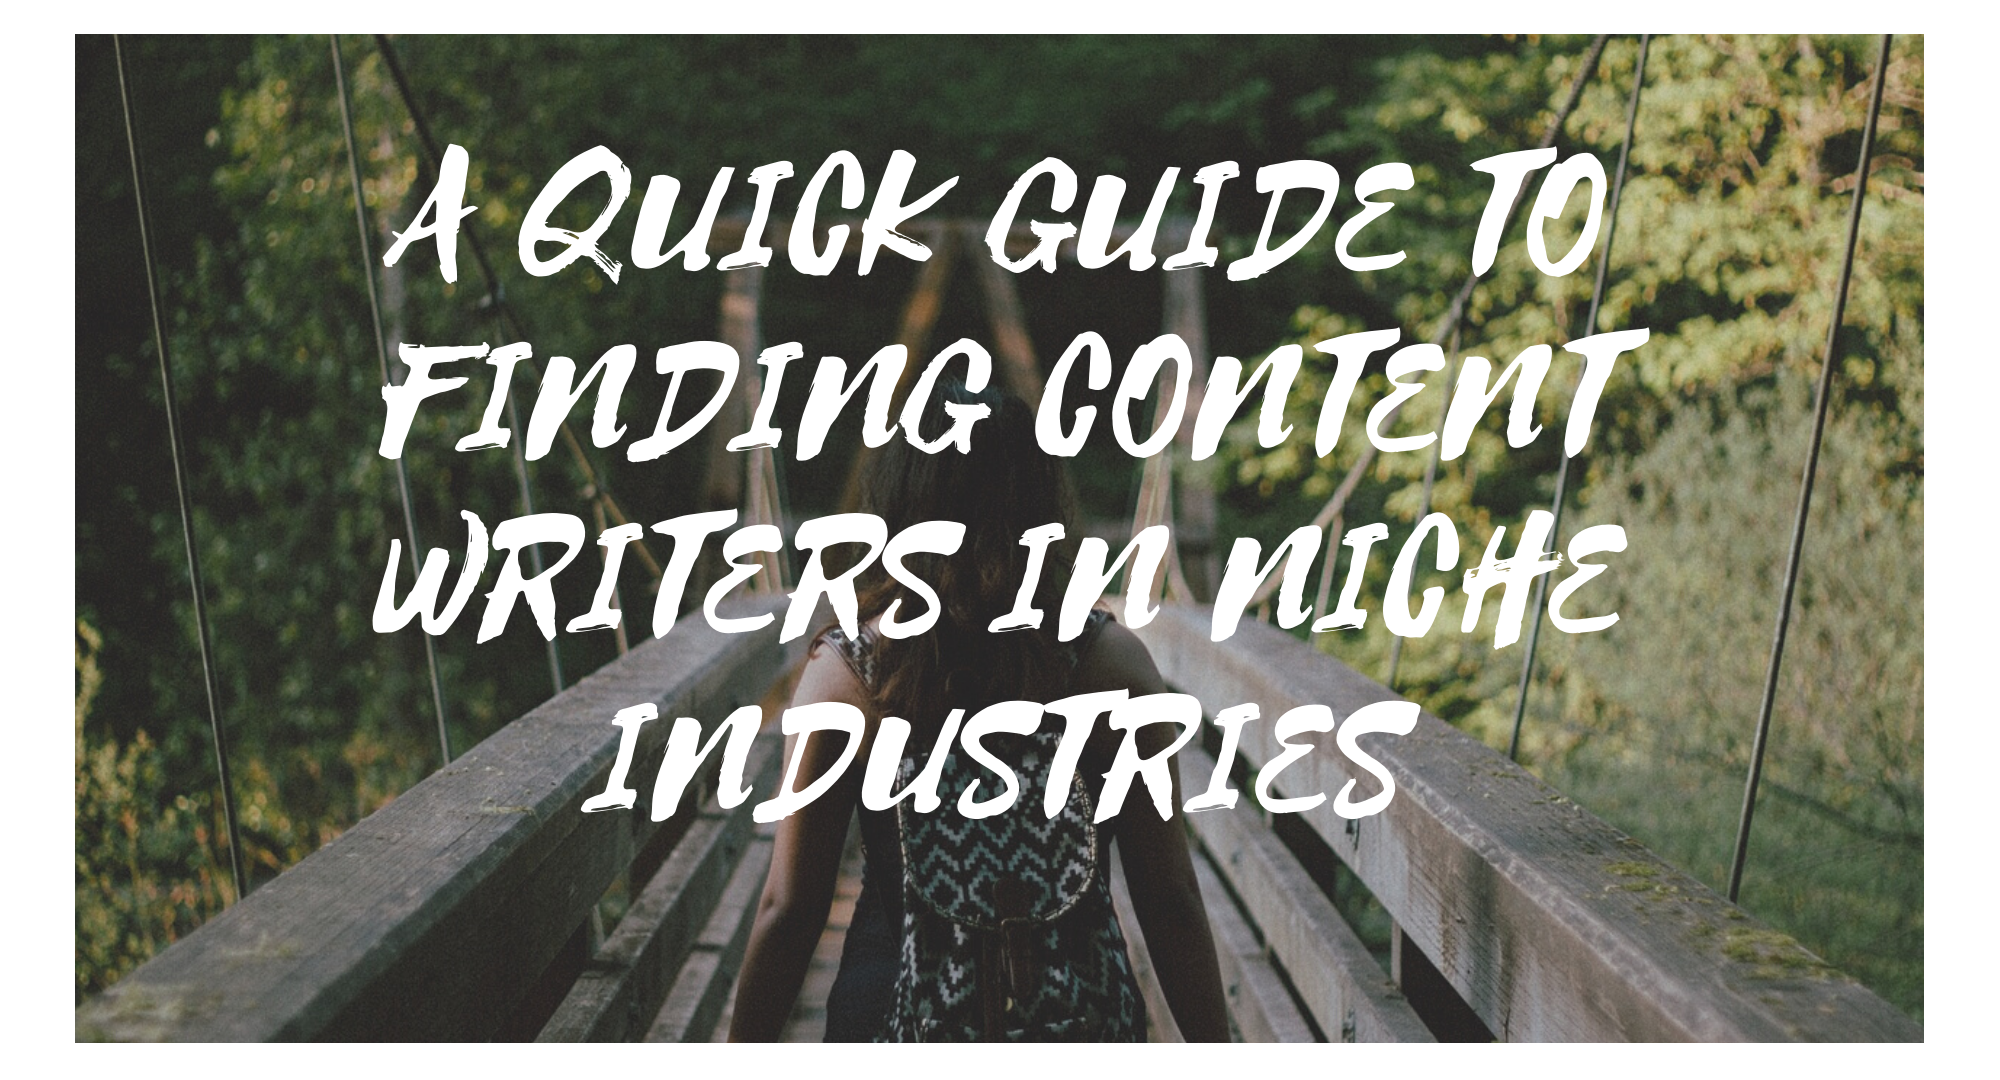 A Quick Guide to Finding Content Writers in Niche Industries